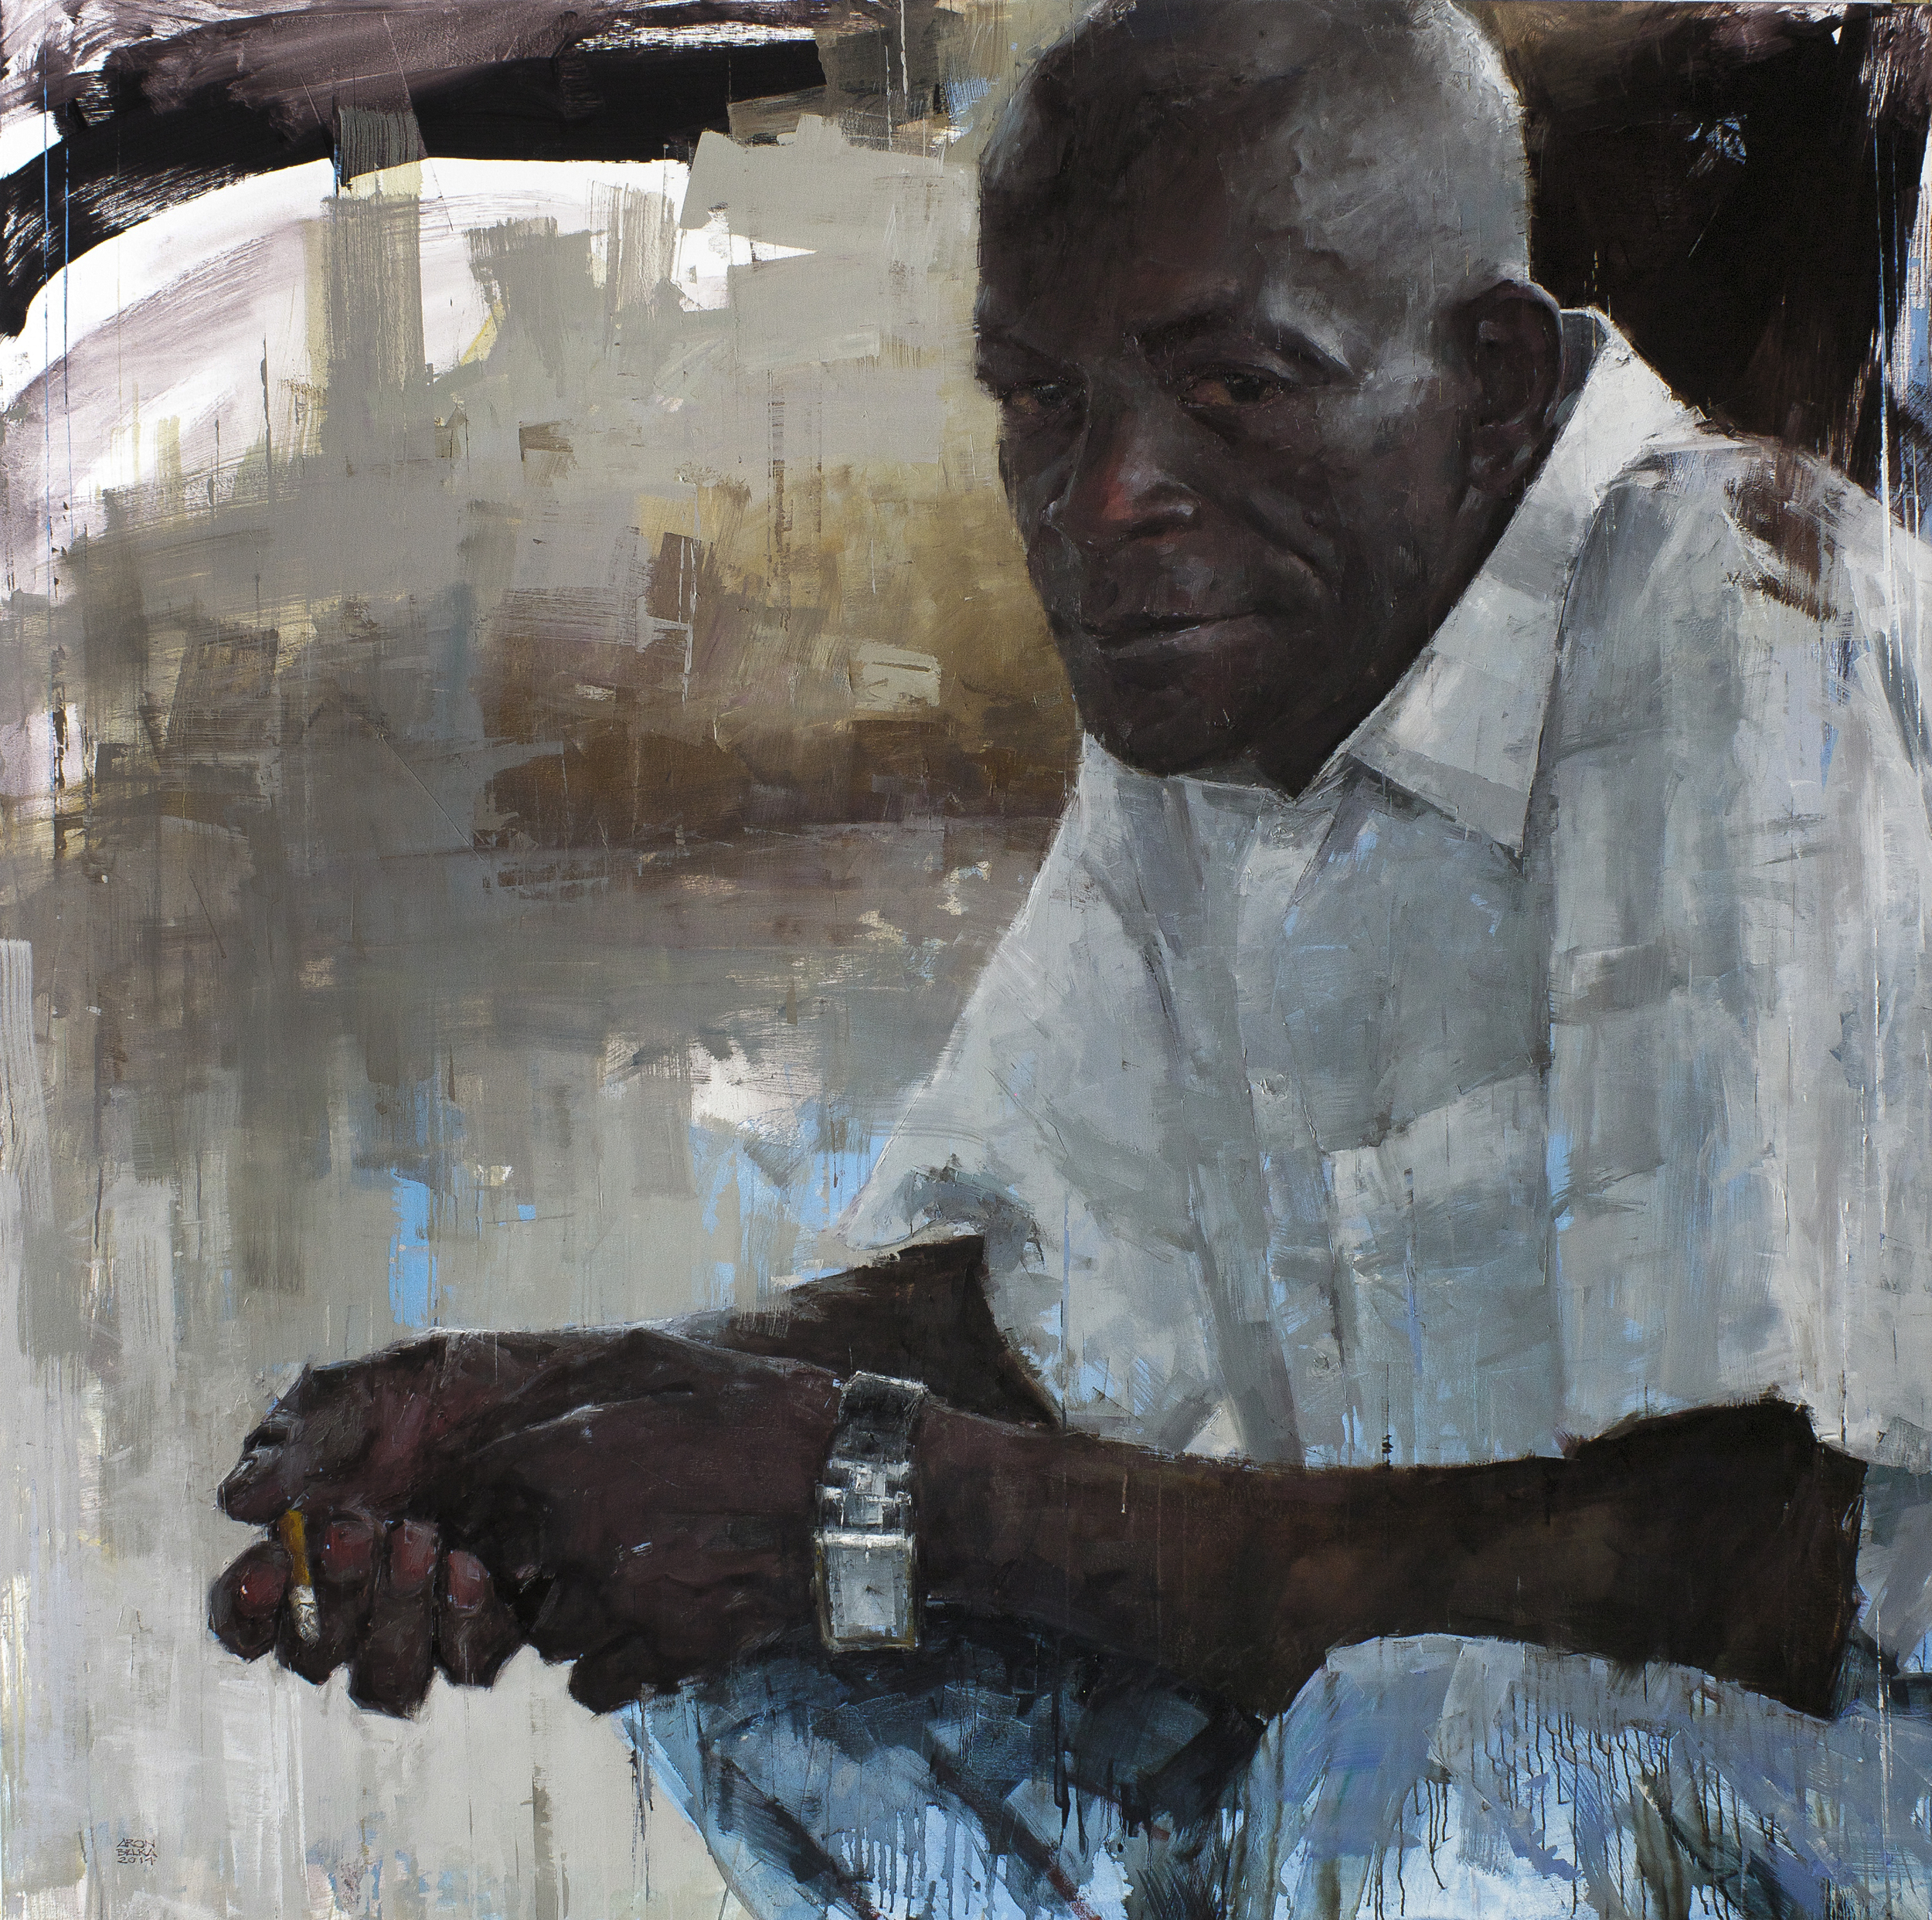 Papeh Sow   2014 72 x 72 inches oil on canvas